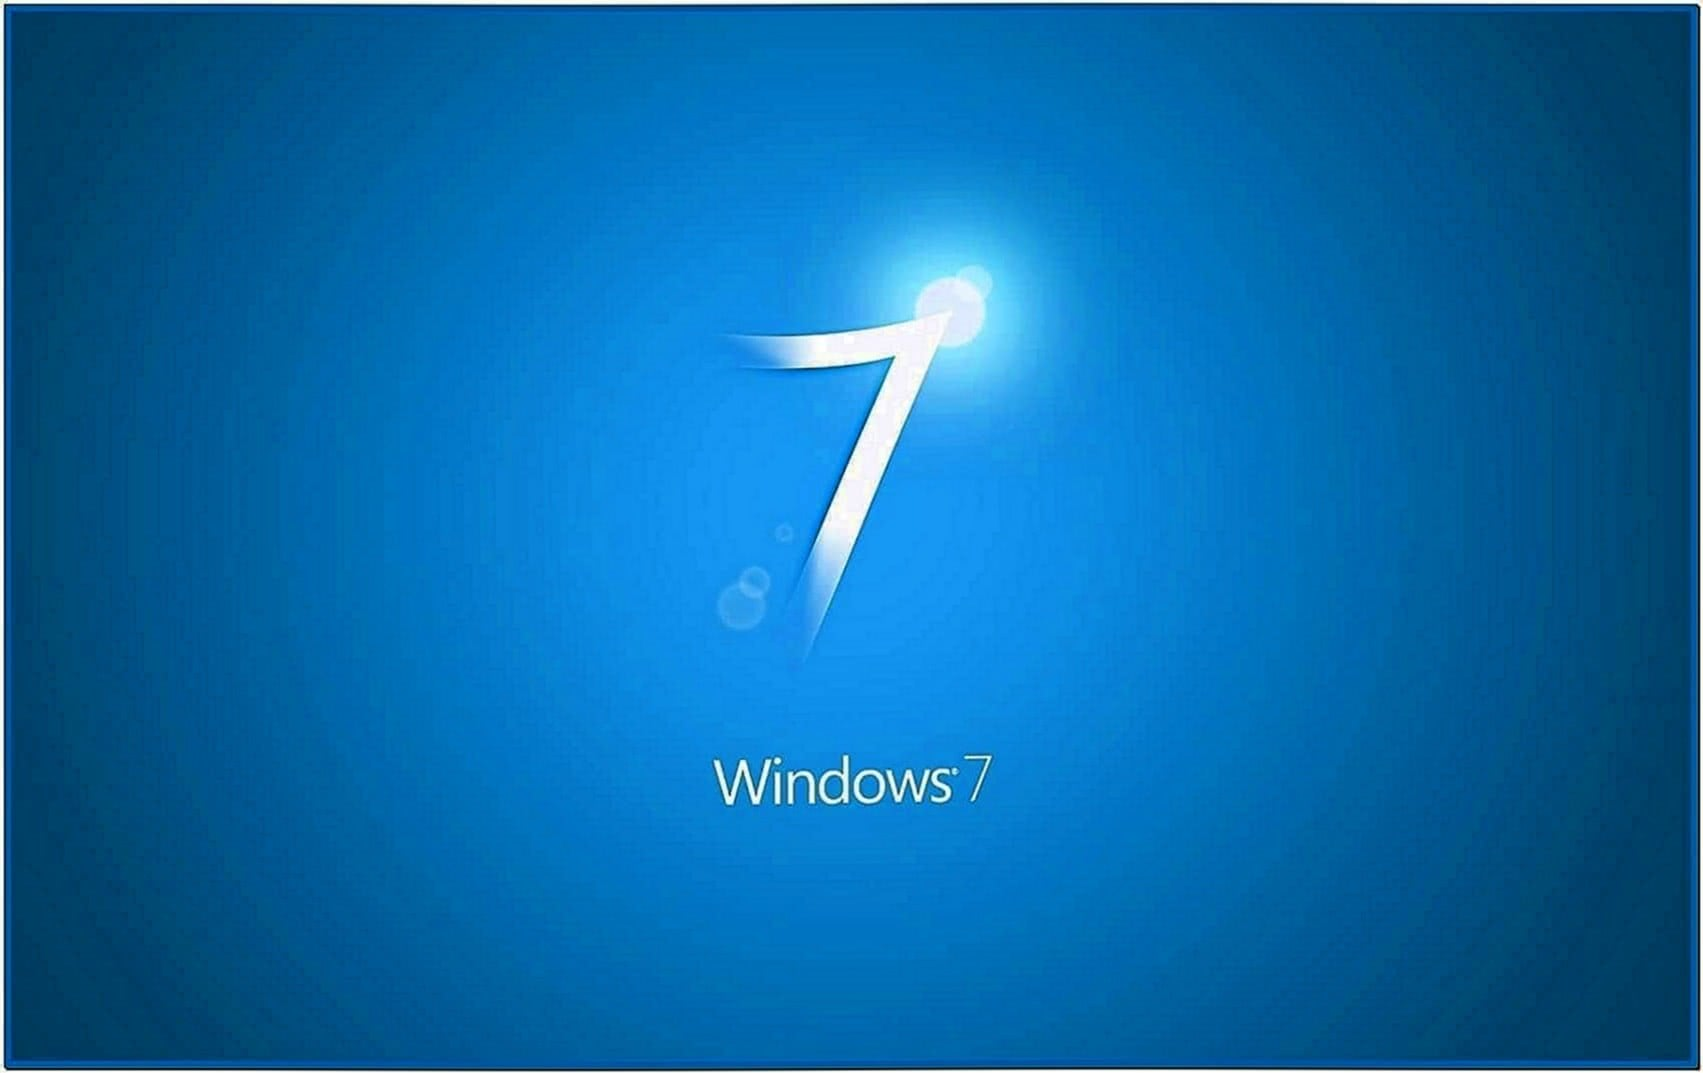 Screensaver Desktop Background Windows 7